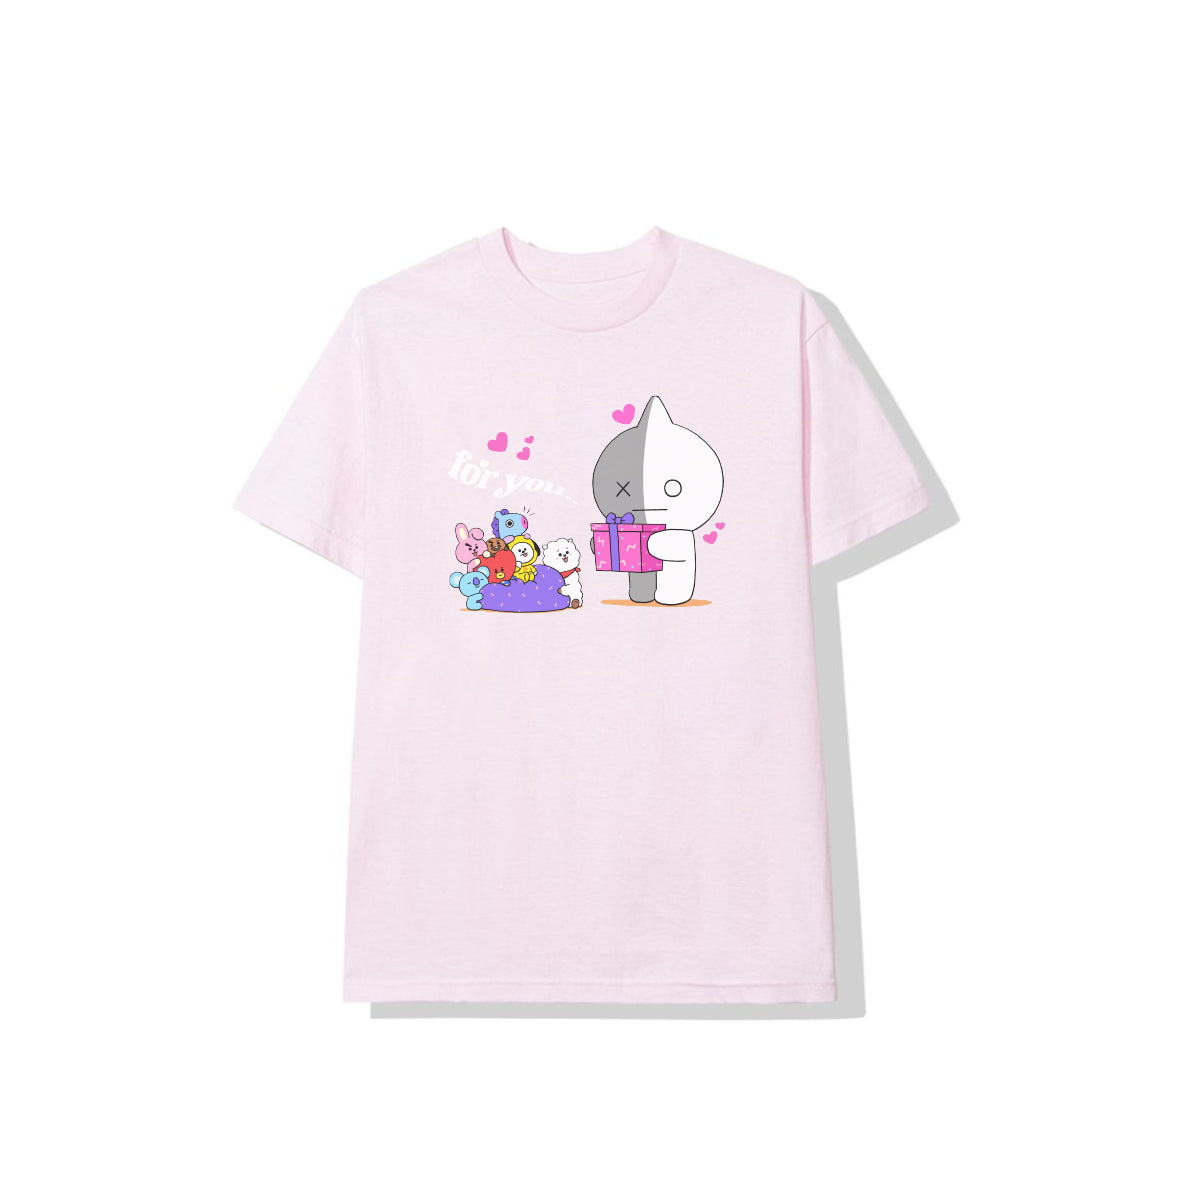 BT21 For You Tee - Light Pink